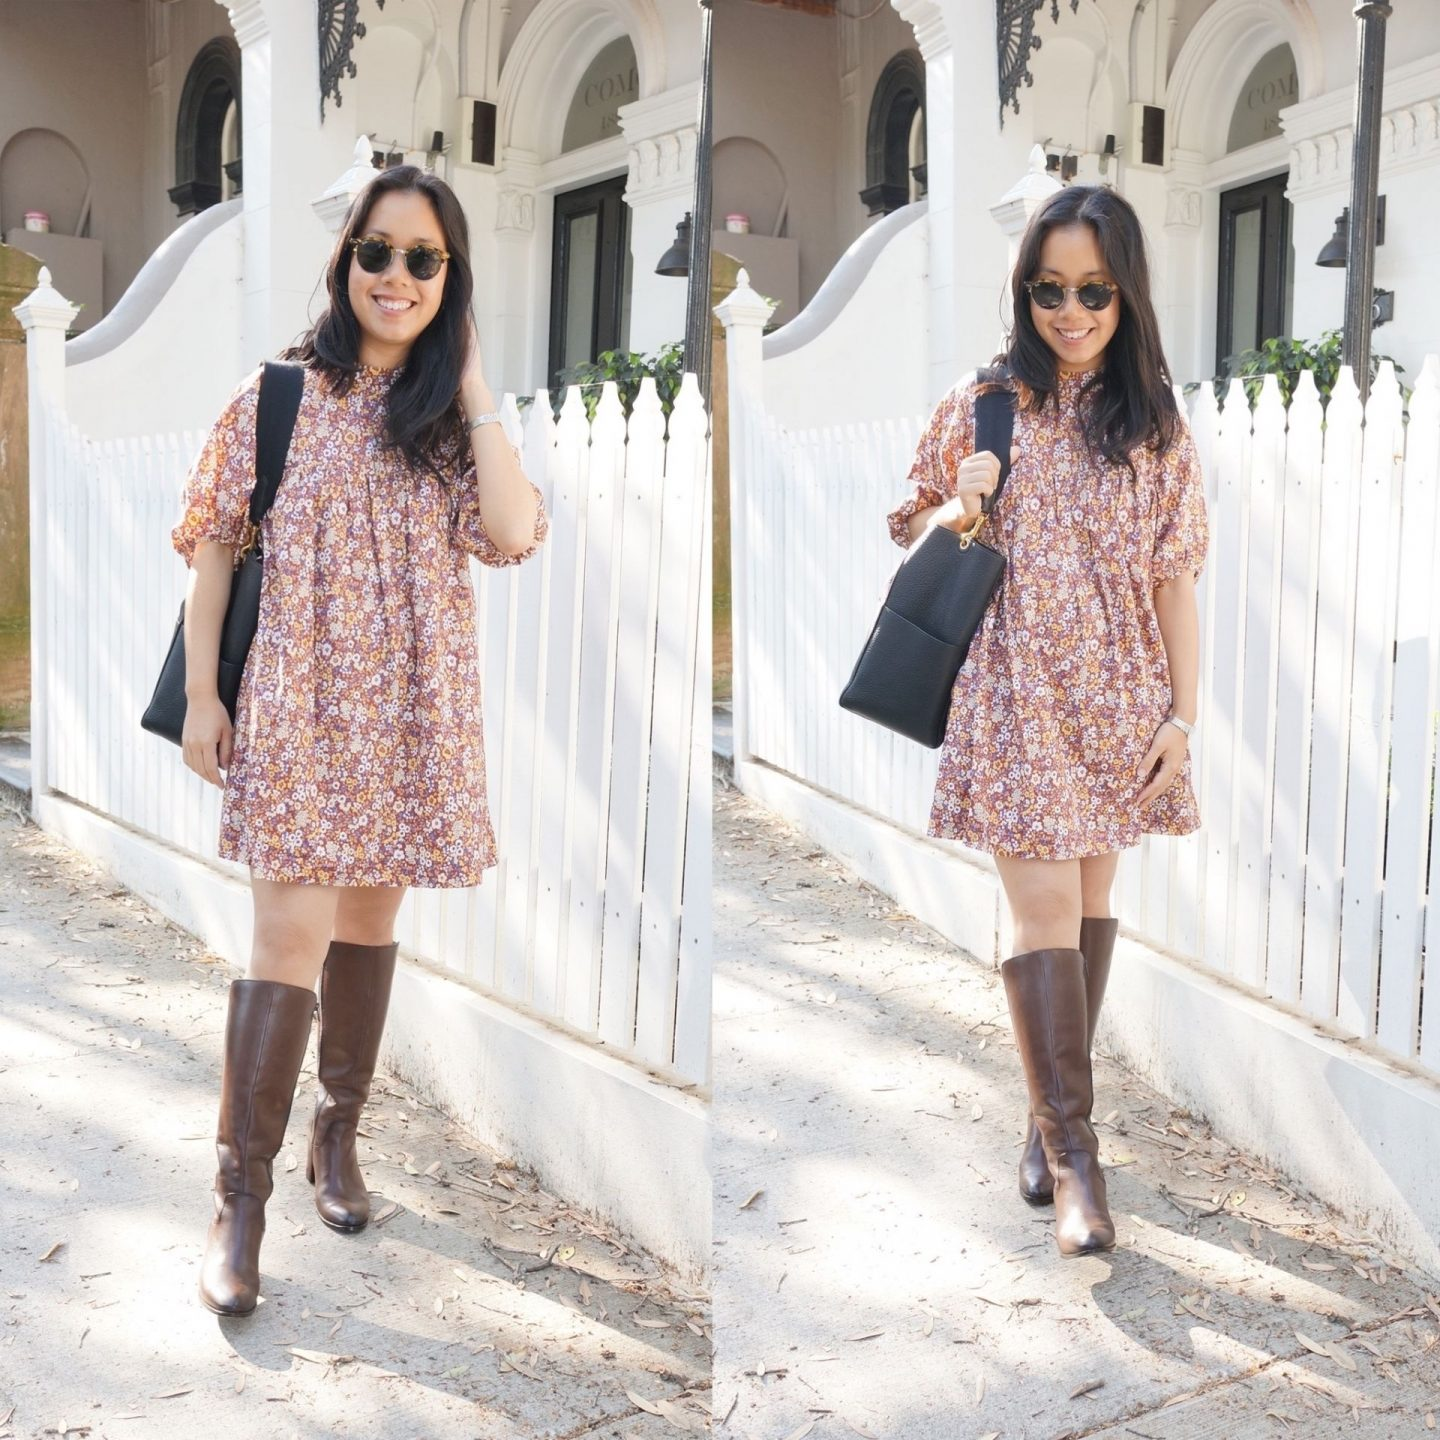 autumn favourites from everlane featuring floral print dress